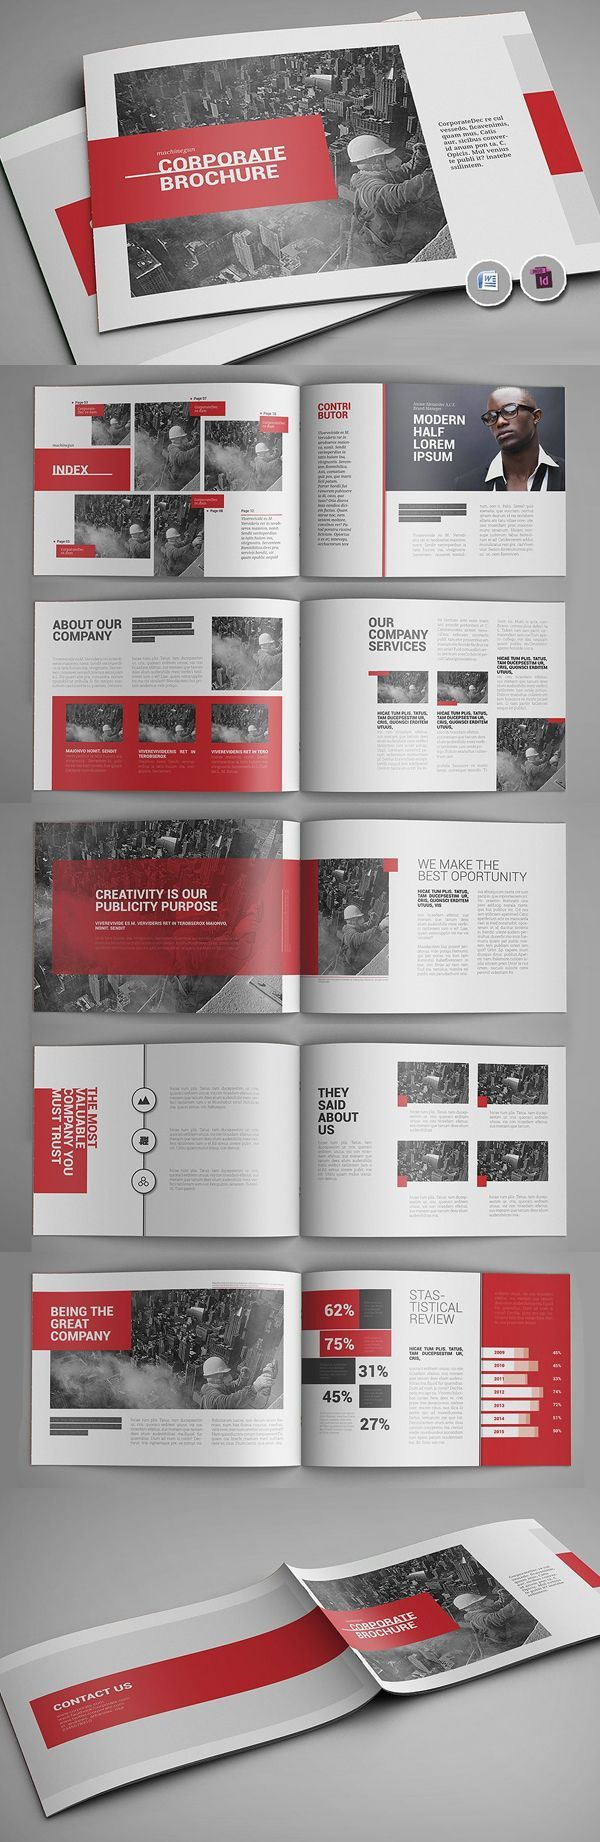 Image Result For Page Brochure Inspiration Photo Printed - 4 page brochure template